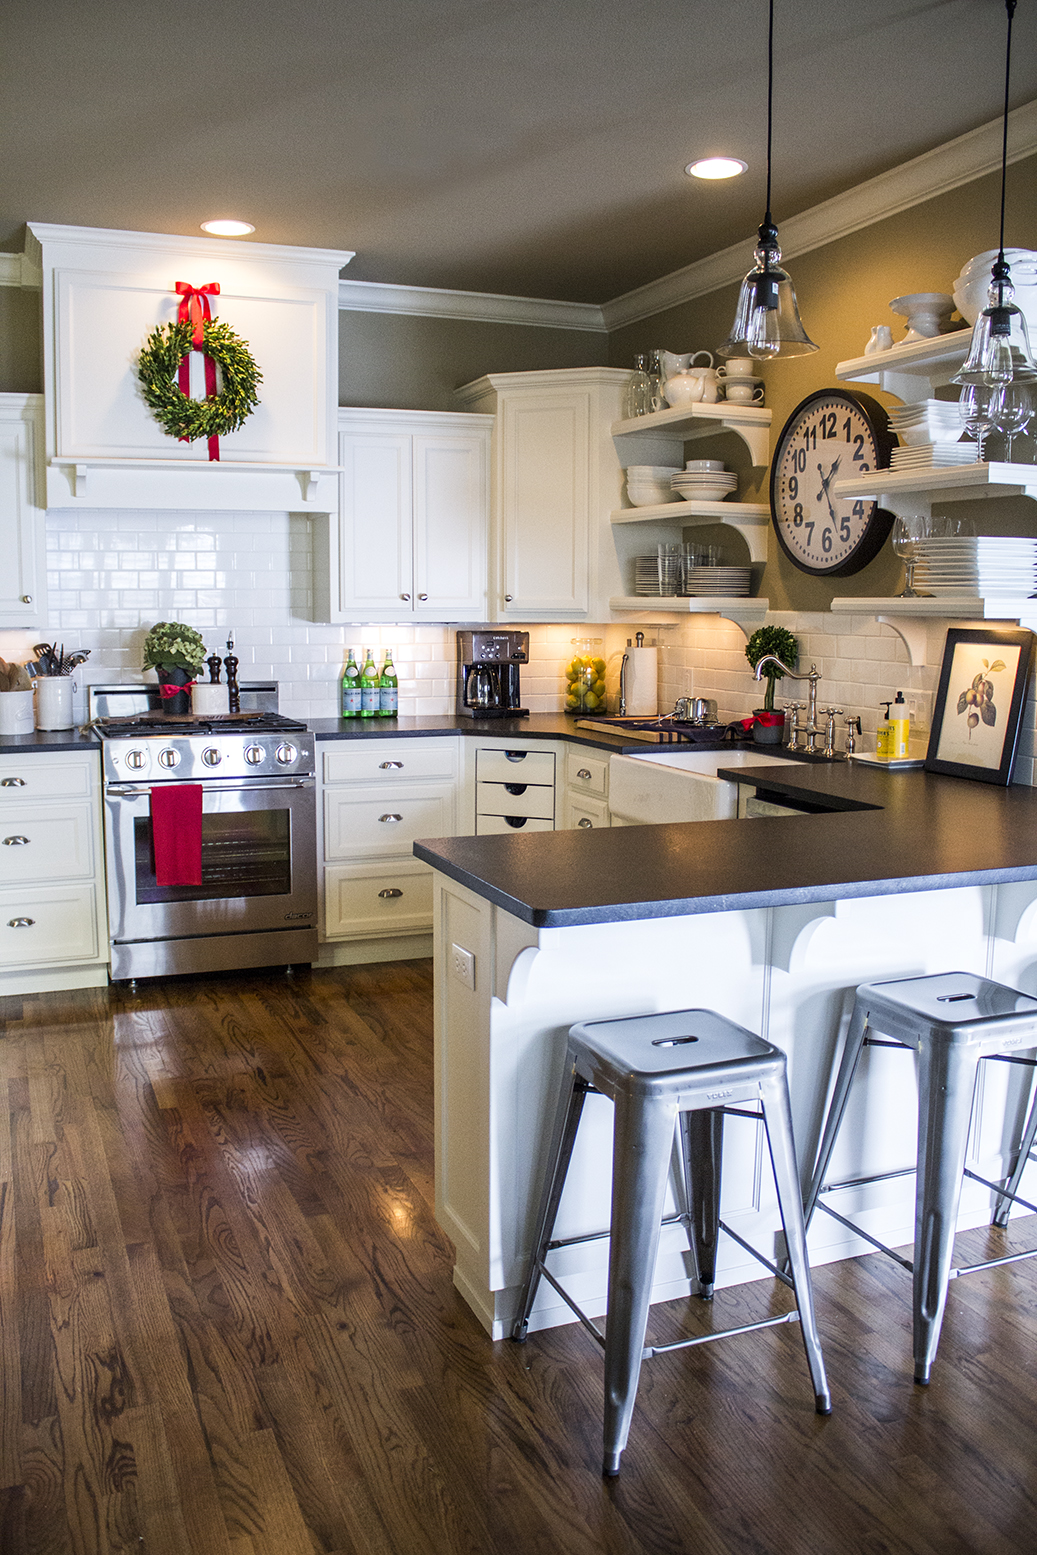 monogrammed kitchen towels stool holiday home tour: classic christmas decor